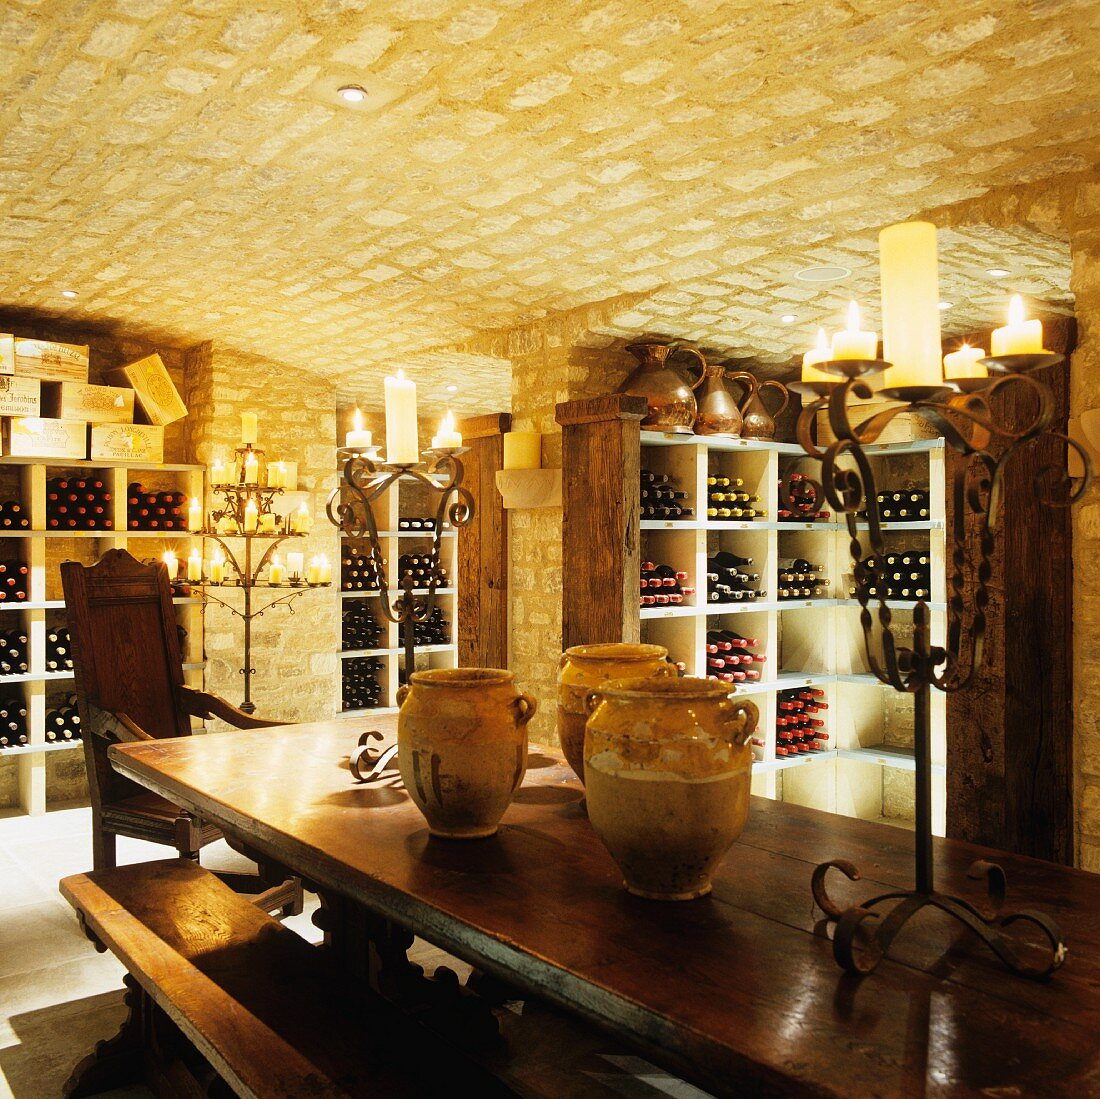 An old wine cellar with a vaulted ceiling lit by candle light